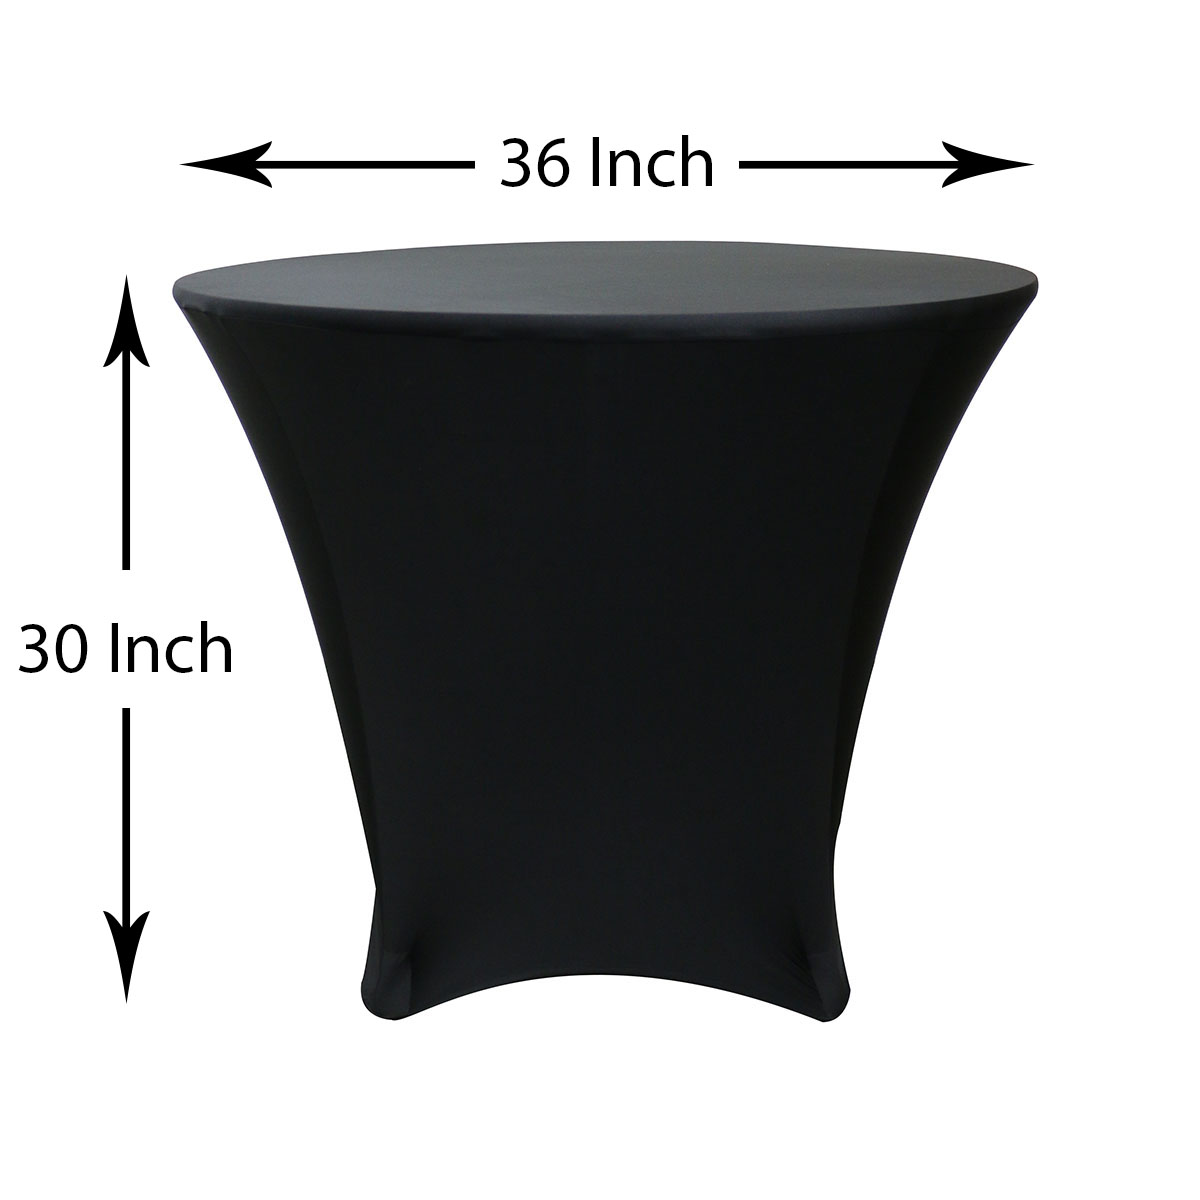 36-30-inch-lowboy-cocktail-spandex-table-covers-black-dimensions.jpg